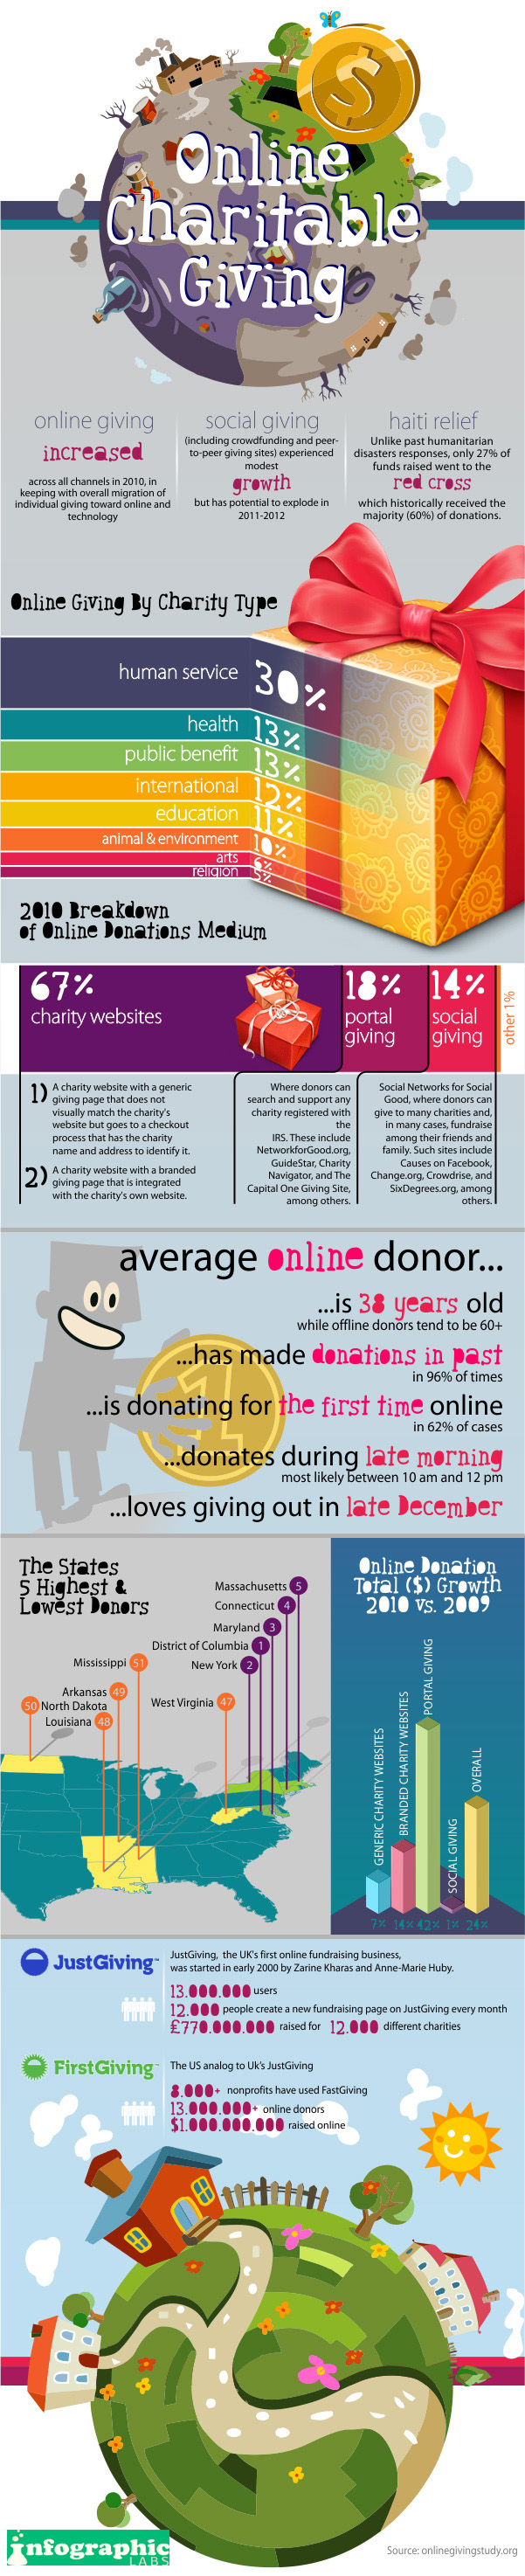 Charitable Giving Online Becoming the Trend